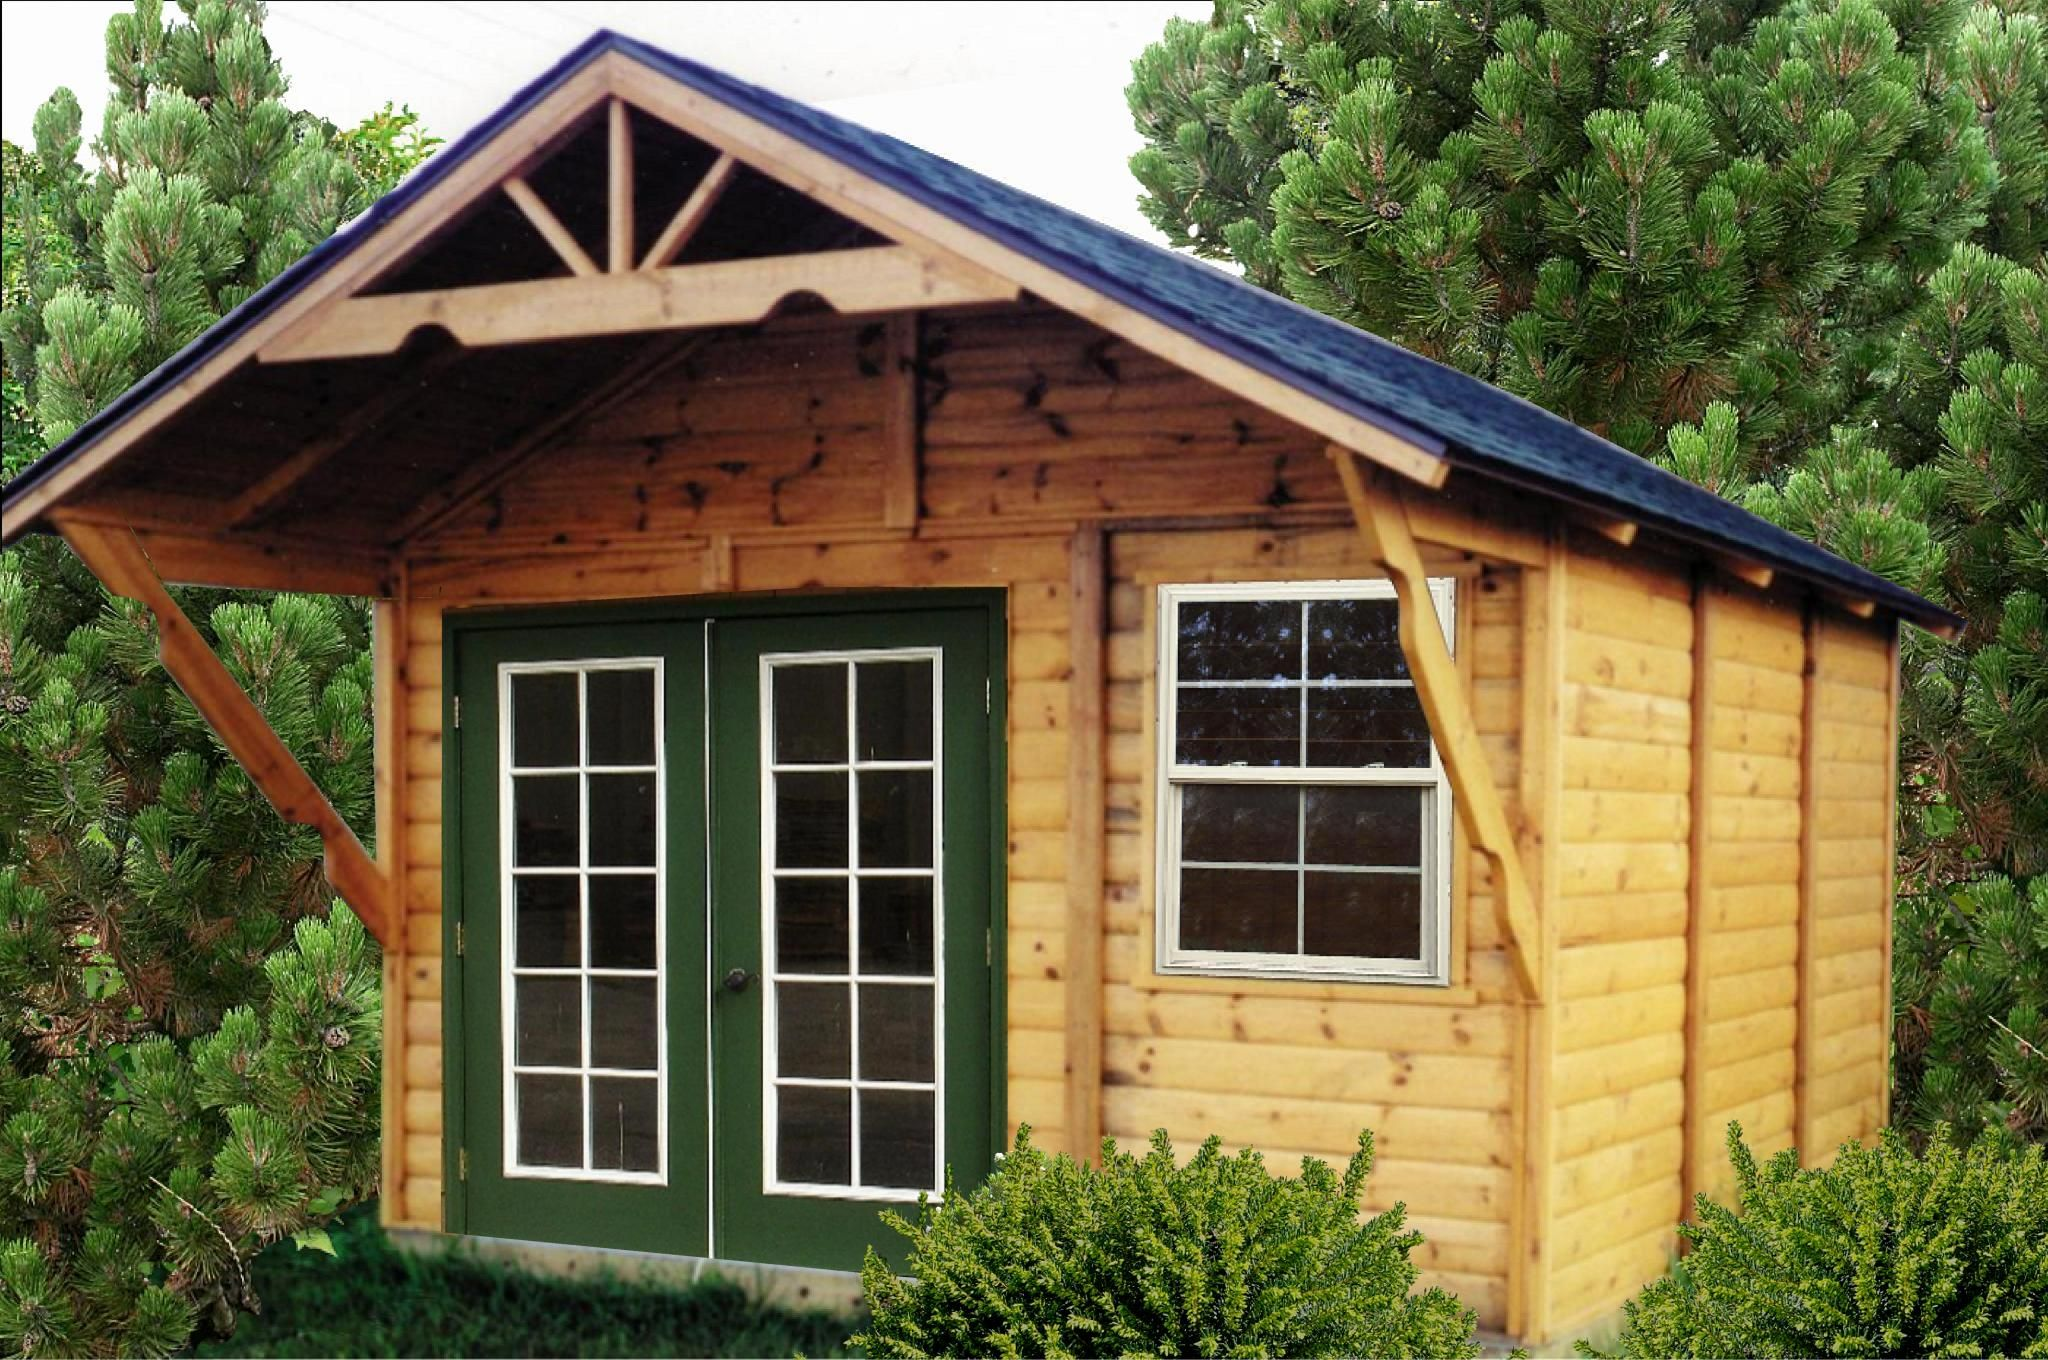 garden shed ideas wooden storage shed plans home decoration and - Garden Sheds Wooden